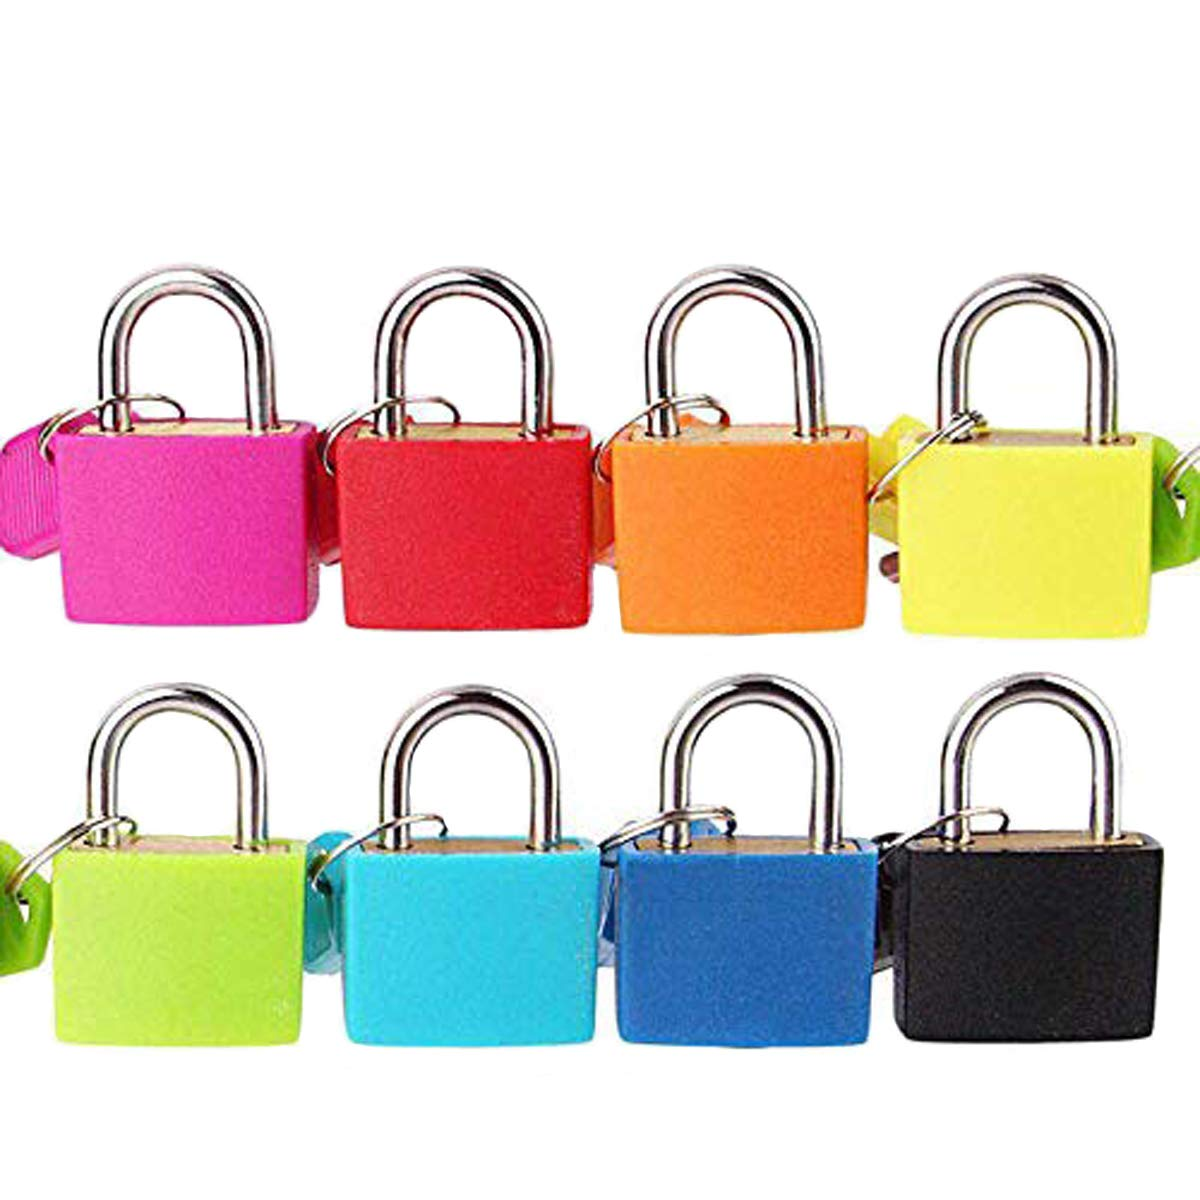 Padlock Security Lock Applies to Lockers Backpacks Computer Bags Toolbox and Other Colorful Colors are Easy to distinguish (8 per Pack)